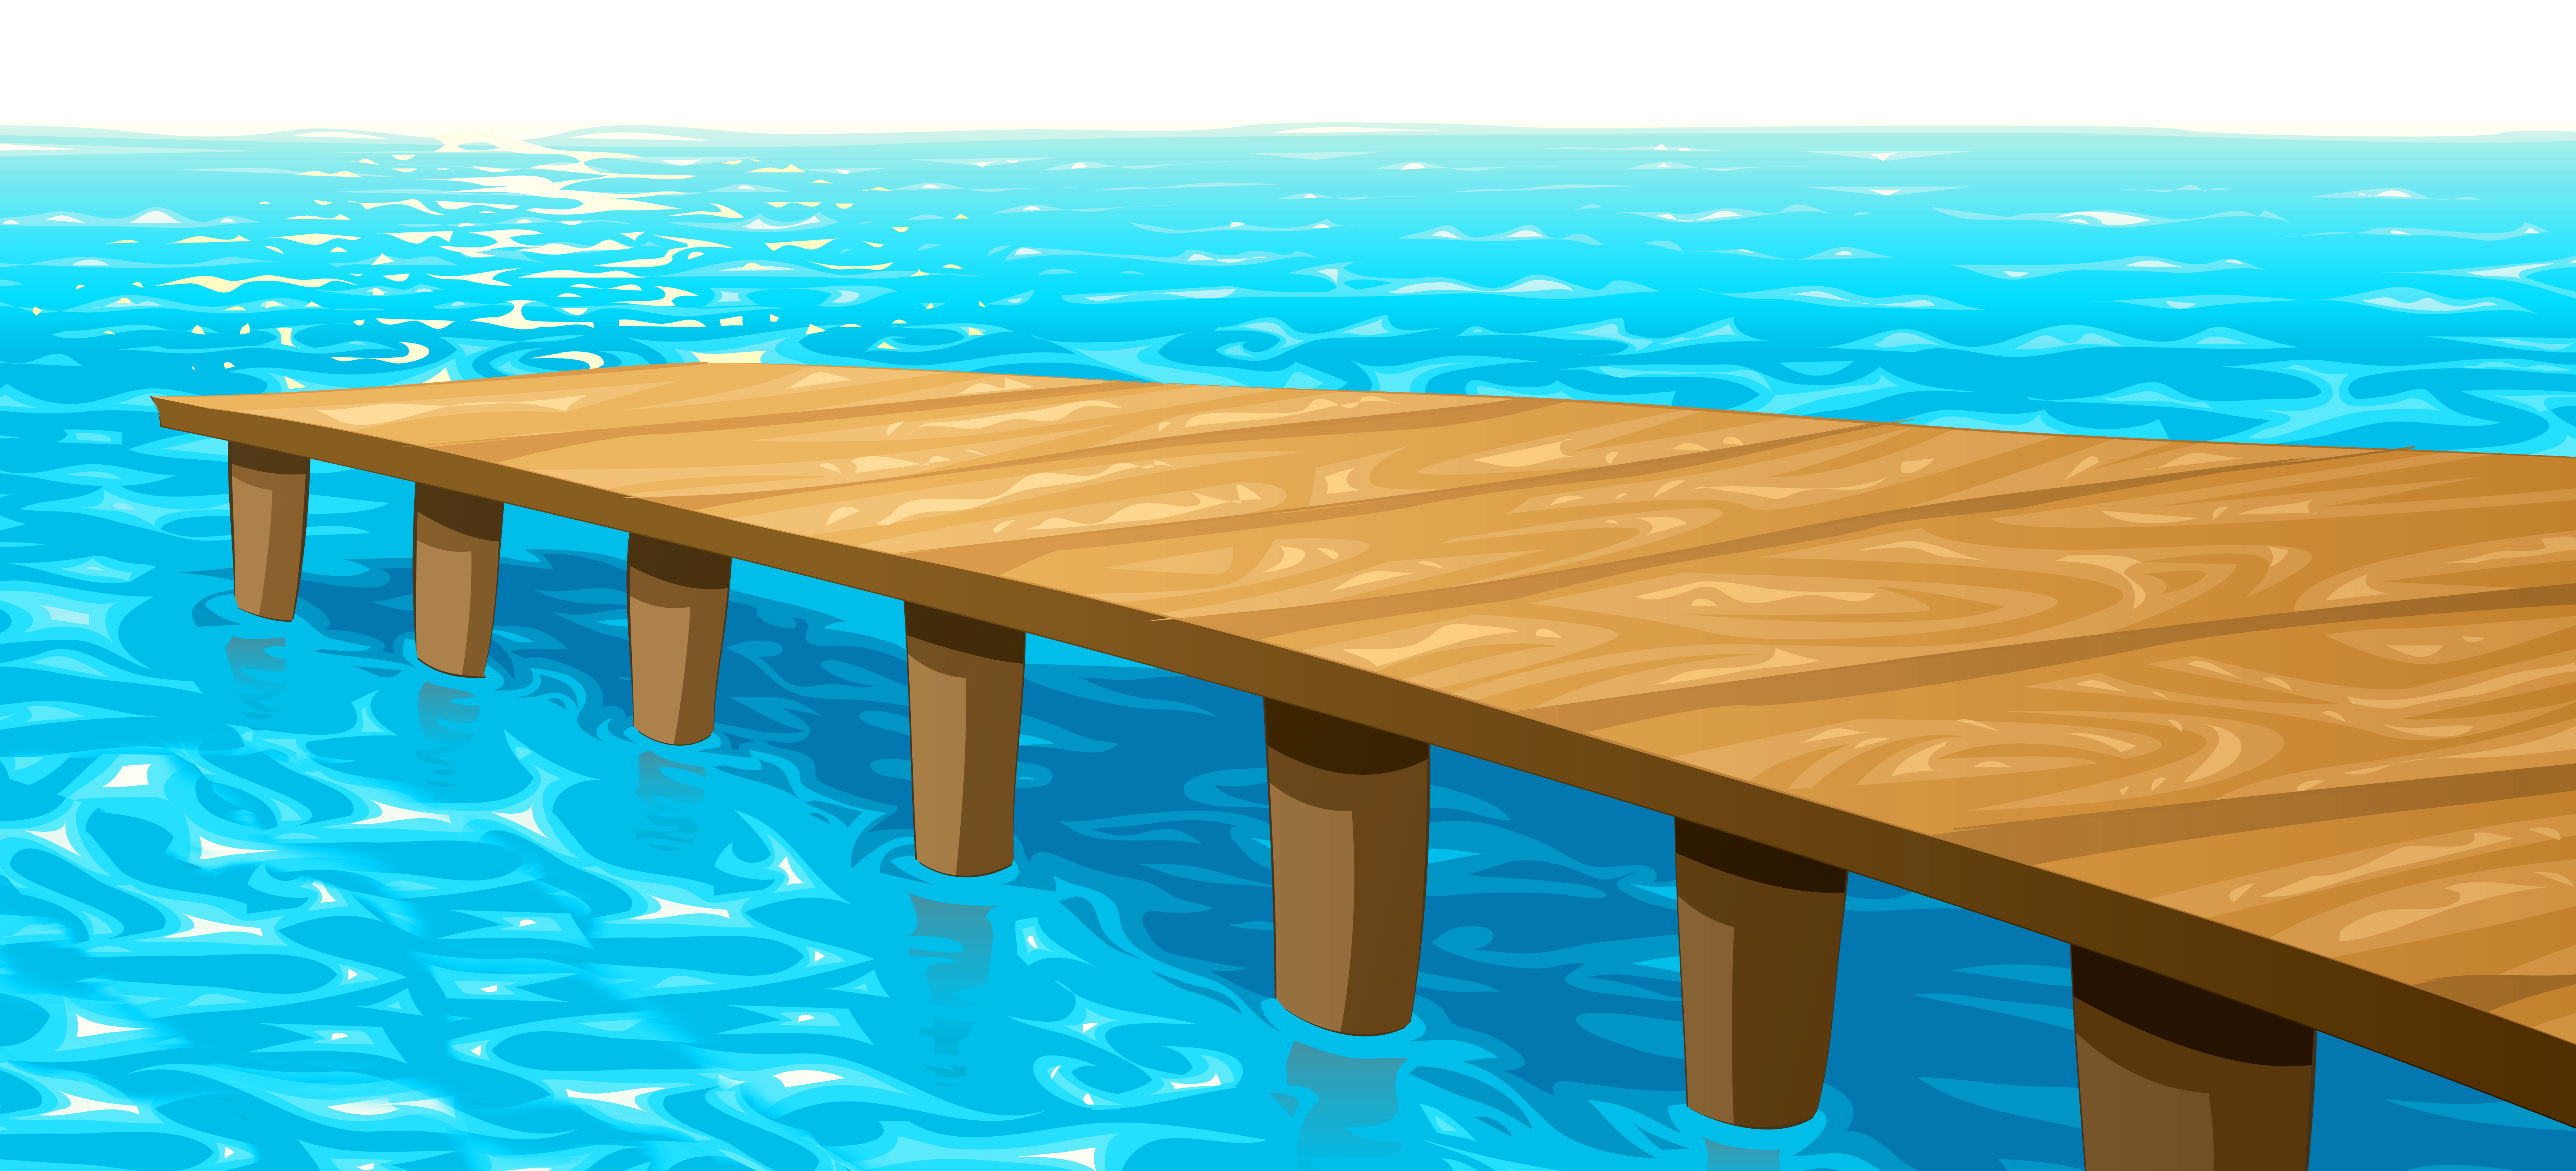 Dock clipart #3, Download drawings